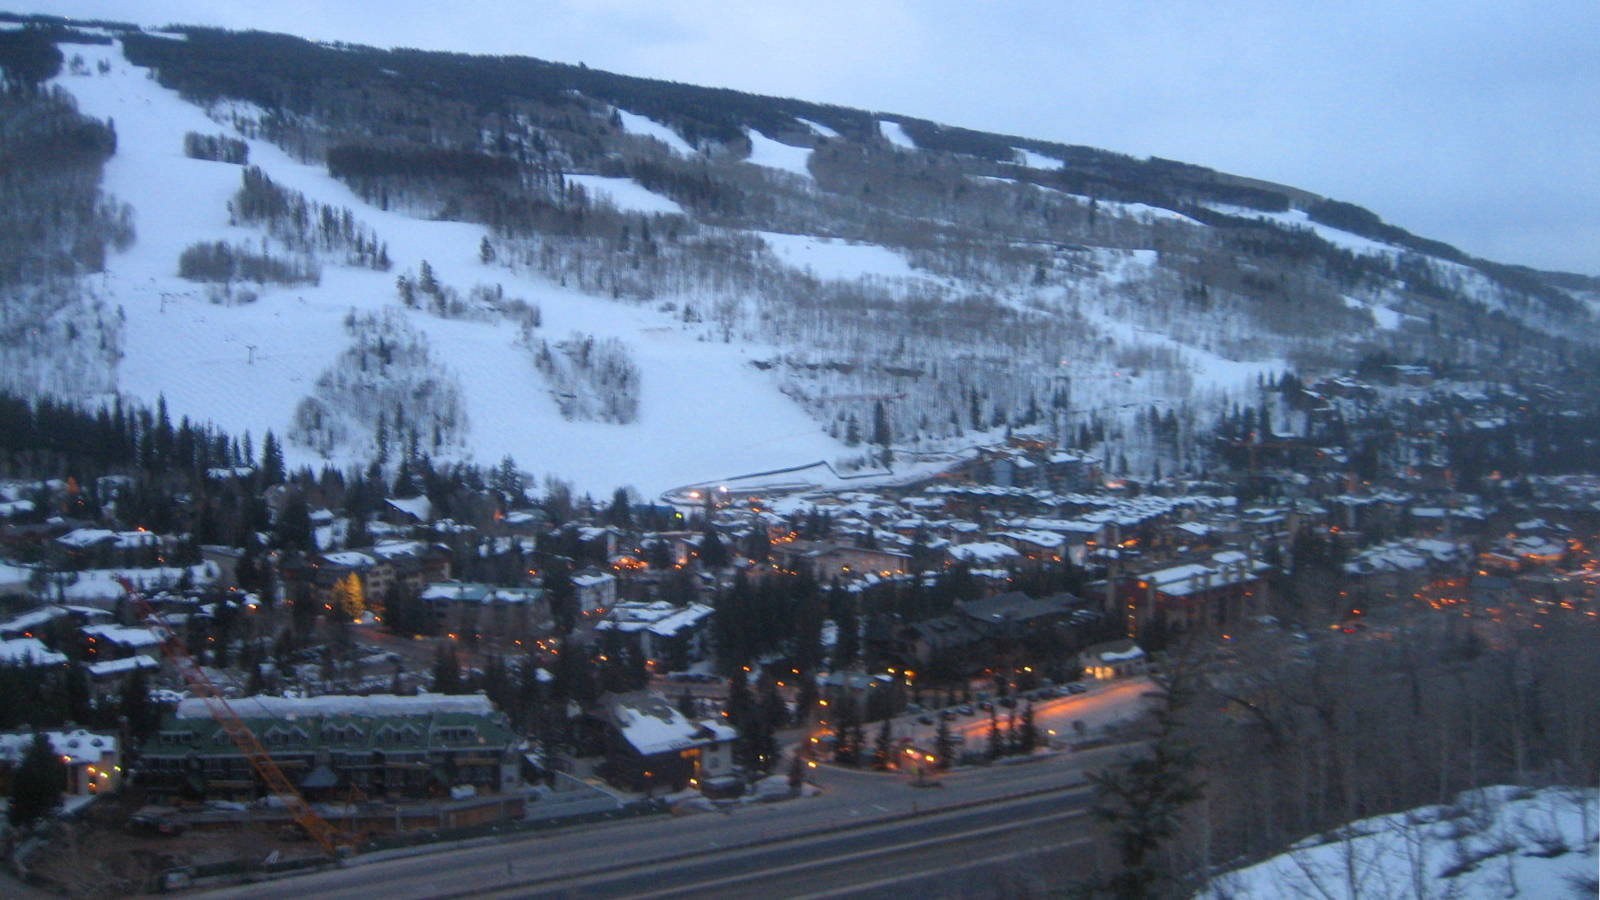 Vail Colorado (US) Ski Resort Location, Map and Directions